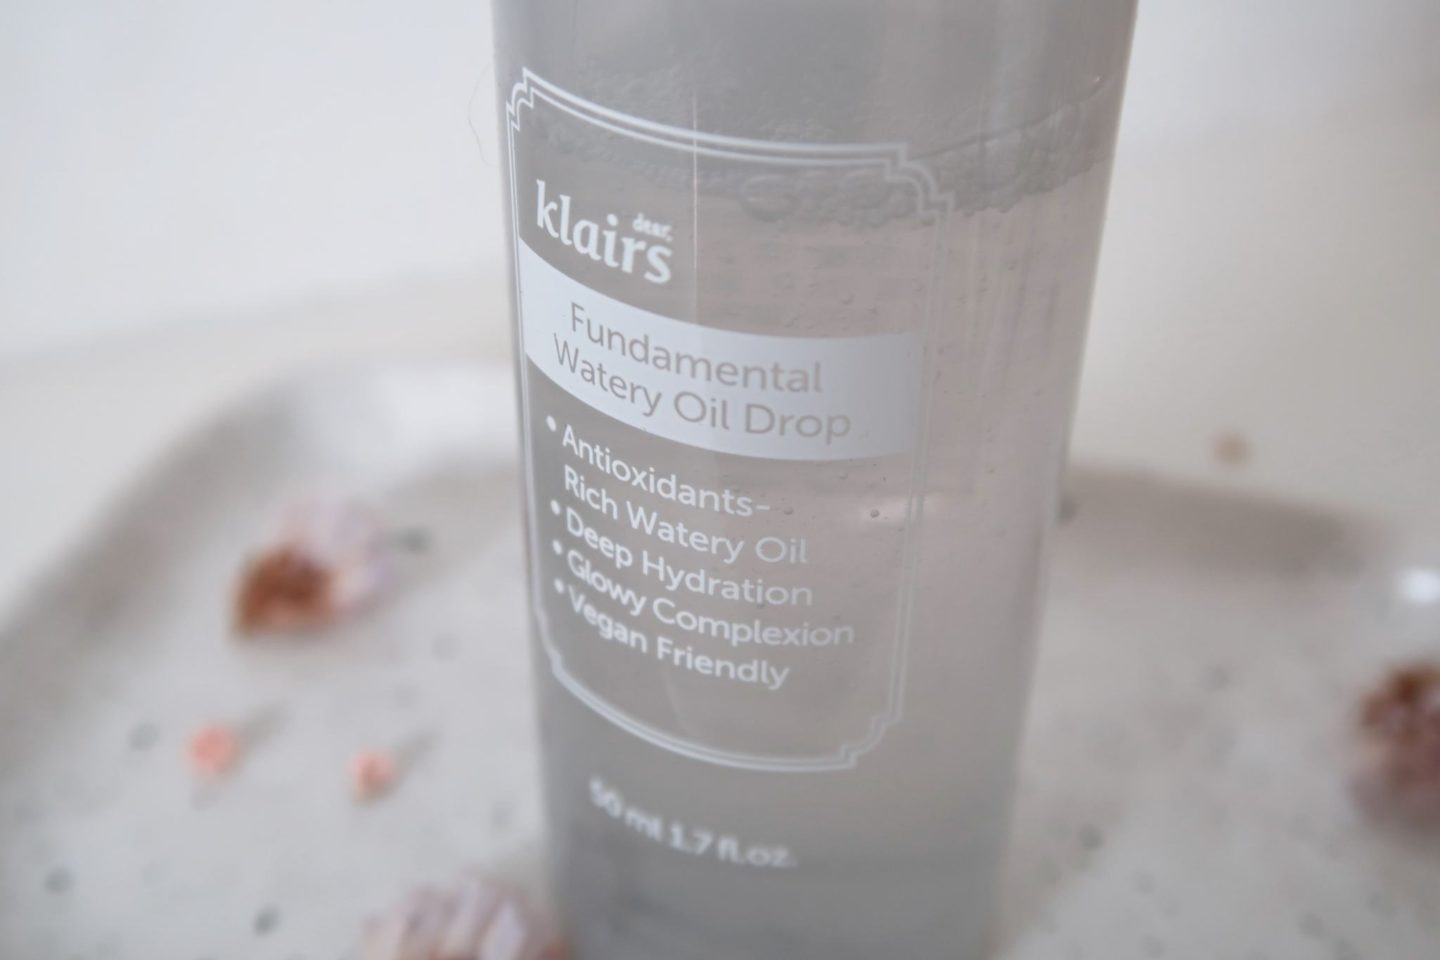 Fundamental Watery Oil Drop by Klairs. An oil to water serum full of antioxydants and perfect to hydrate oily skins without the disadvantages of an oil.   #klairs #kbeauty #fundamentalwaterydrop #skincareroutine #serumvisage #serum #antiage #hydratant #routinedesoin